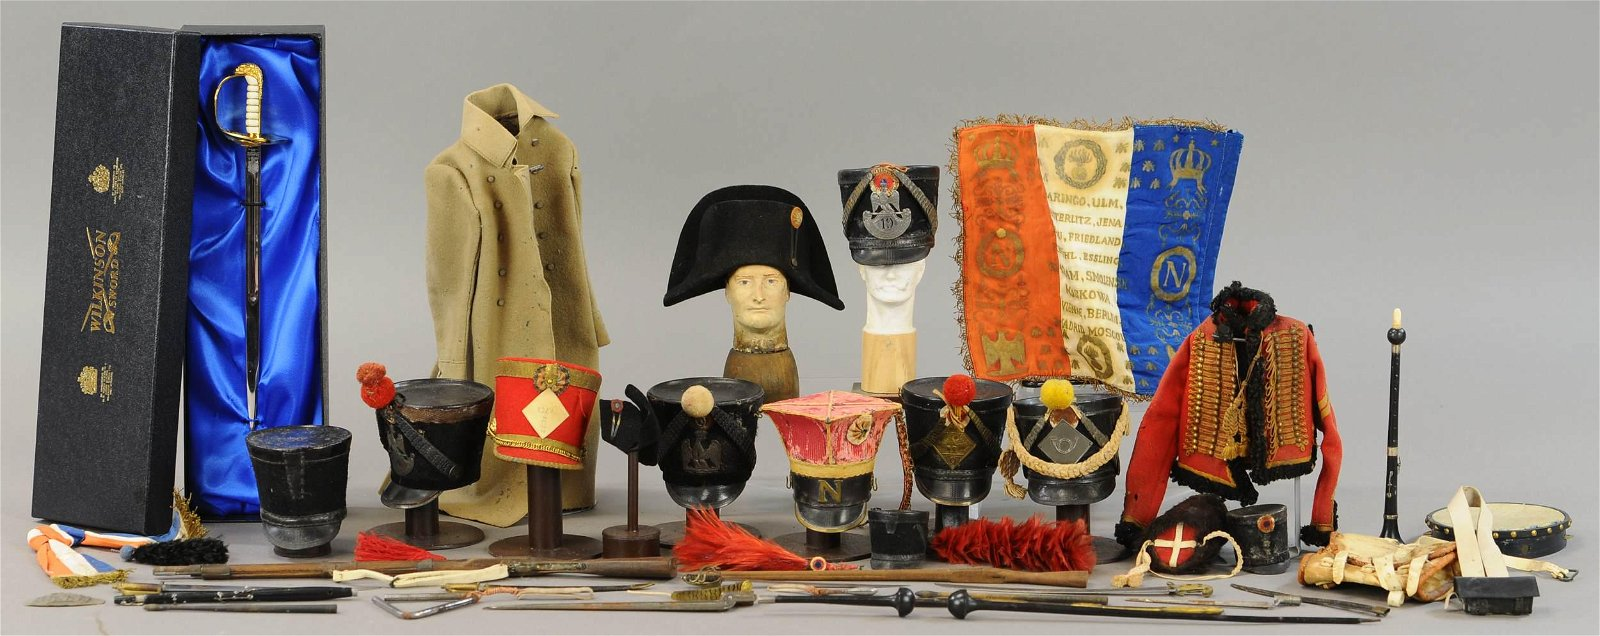 RARE CHARLES SANDRE FRENCH UNIFORMS & EQUIPMENT